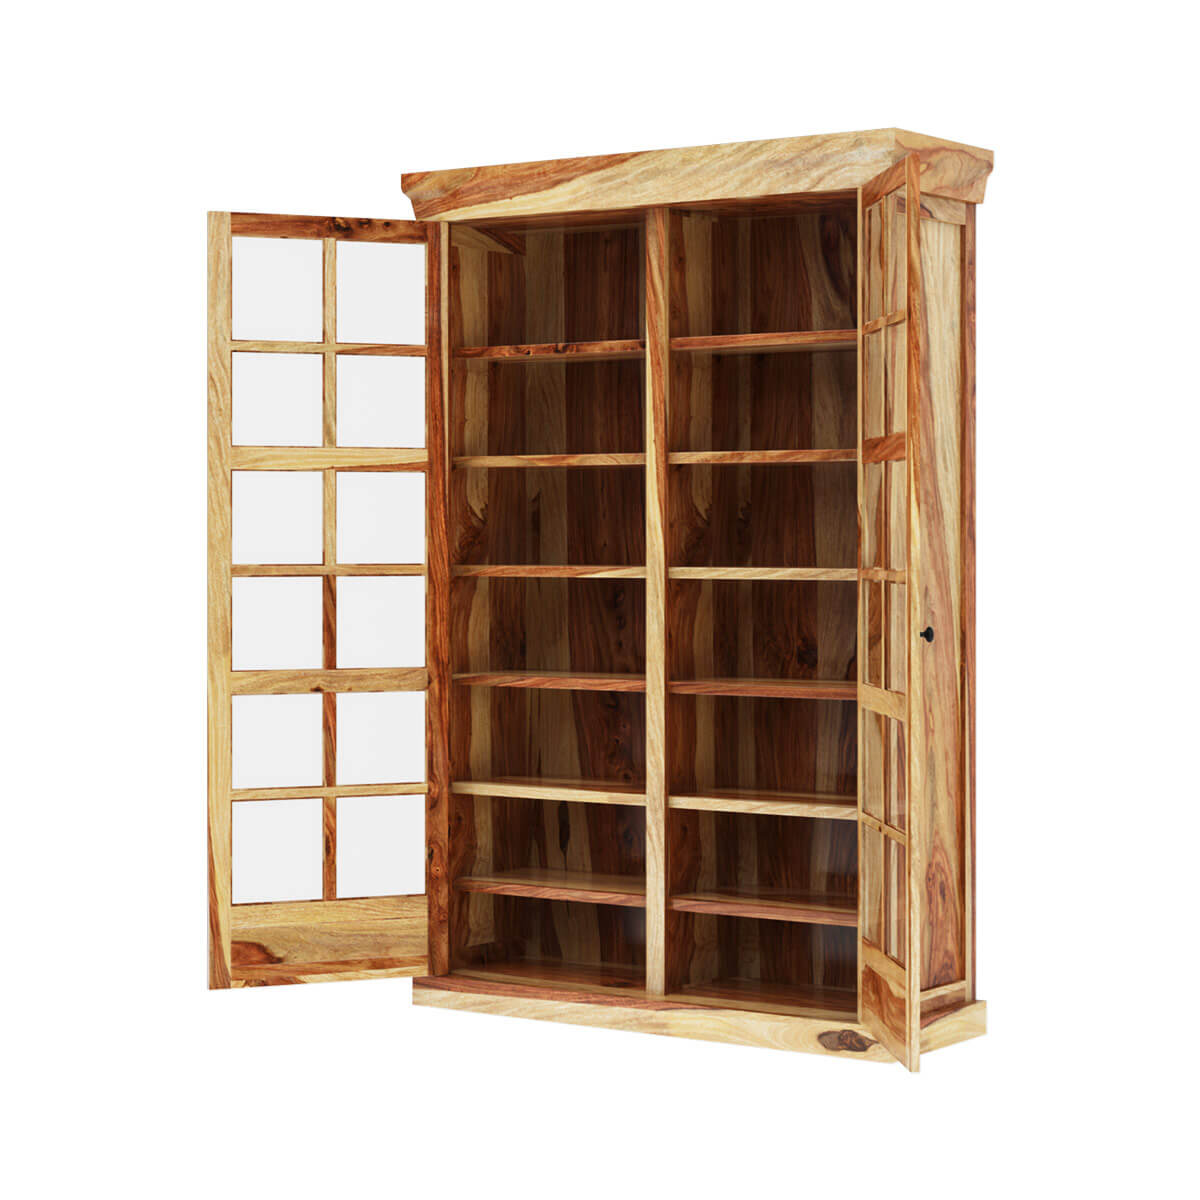 Peoria rustic solid wood glass sliding door large storage for Wood sliding glass doors